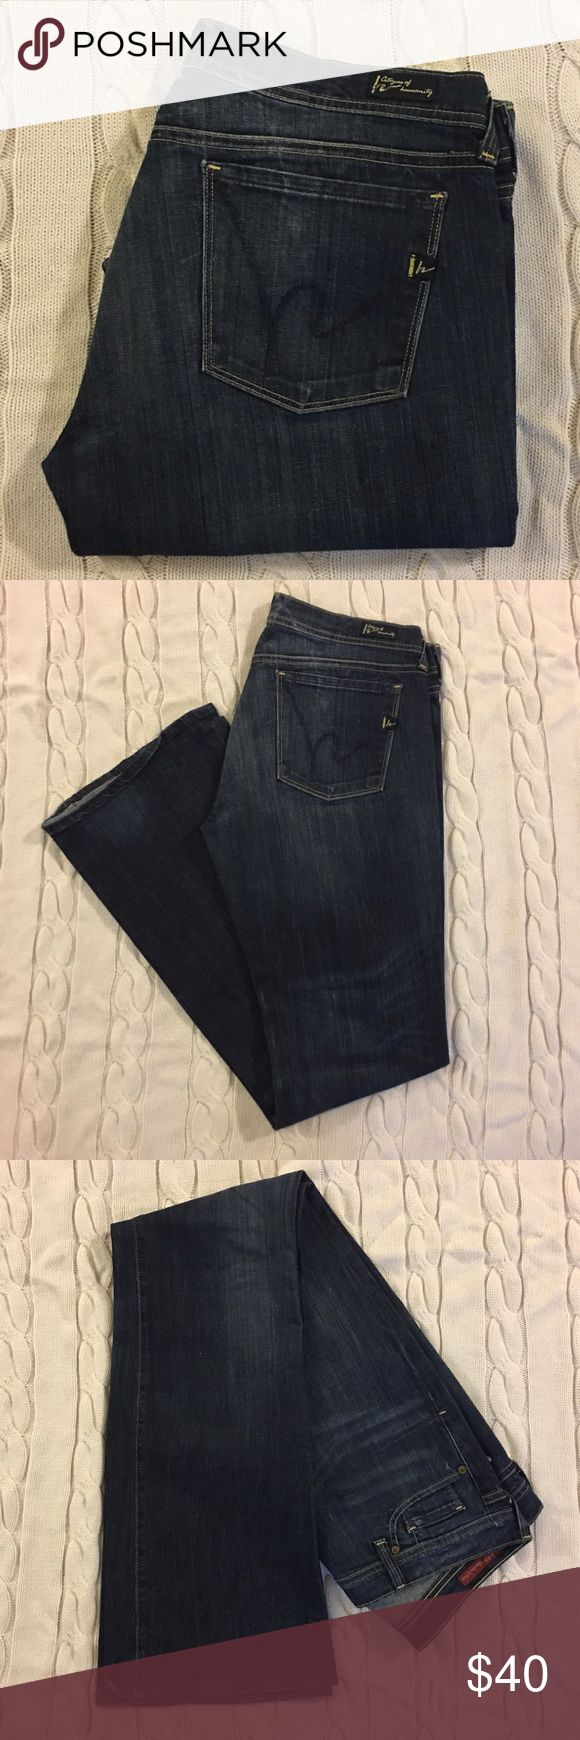 """Citizens of Humanity Stretch Bootcut Jeans Citizens of Humanity Stretch Bootcut Jeans - Dark Wash with Fading - 33.5"""" Inseam - Excellent Used Condition Citizens of Humanity Jeans Flare & Wide Leg"""